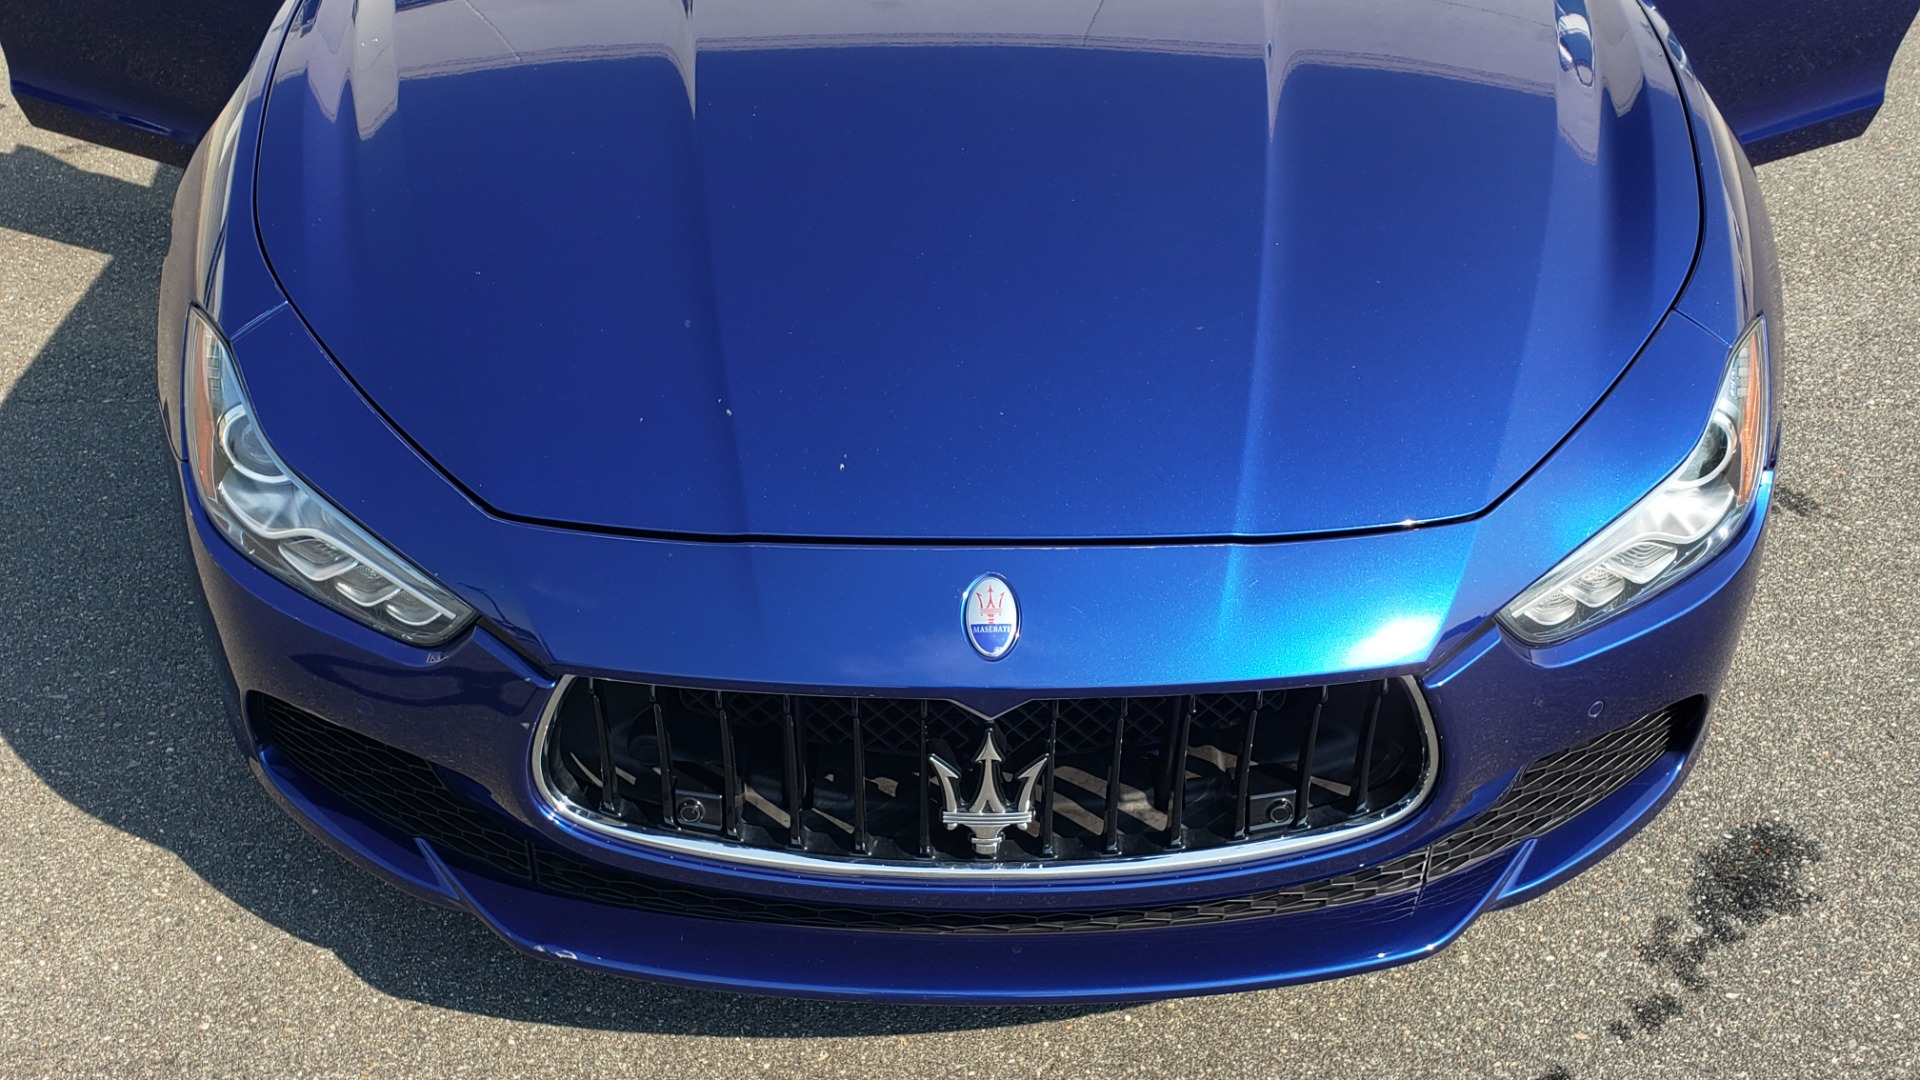 Used 2015 Maserati GHIBLI SEDAN / 3.0L V6 / 8-SPD AUTO / NAV / HTD STS / SUNROOF / REARVIEW for sale $24,495 at Formula Imports in Charlotte NC 28227 25